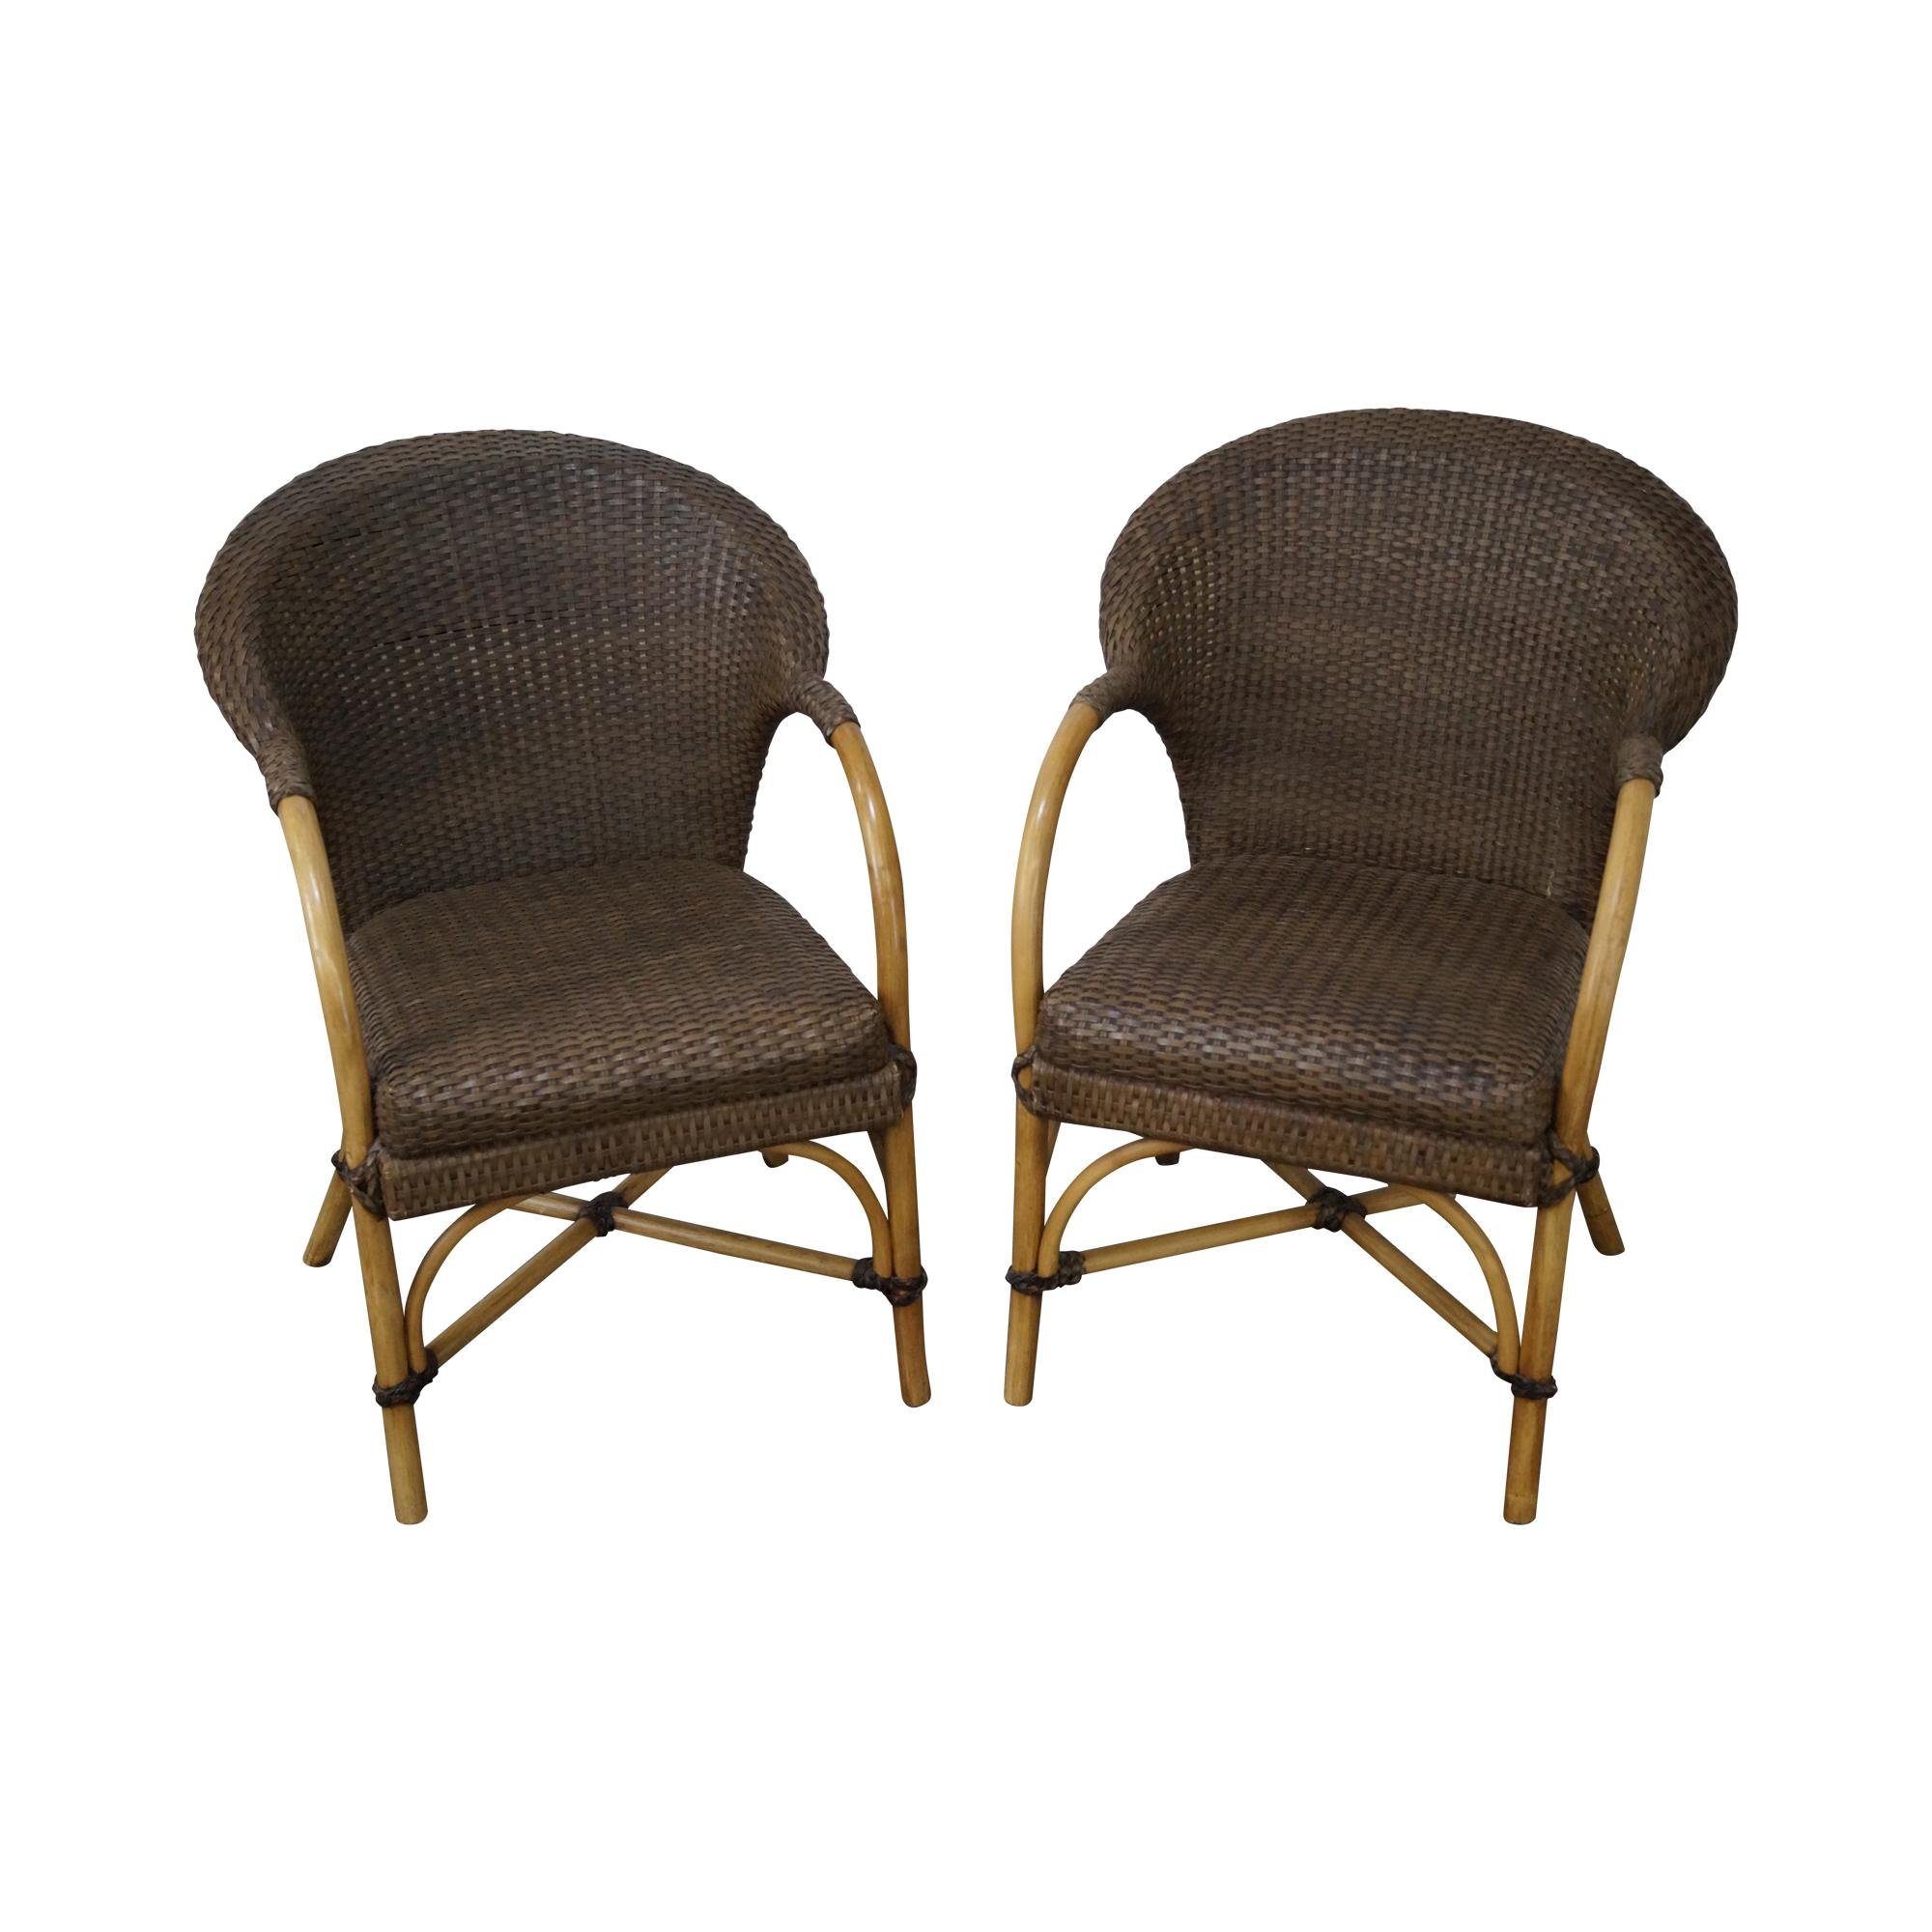 Bamboo Chair With Arms: Vintage Leather Bamboo Rattan Frame Arm Chairs